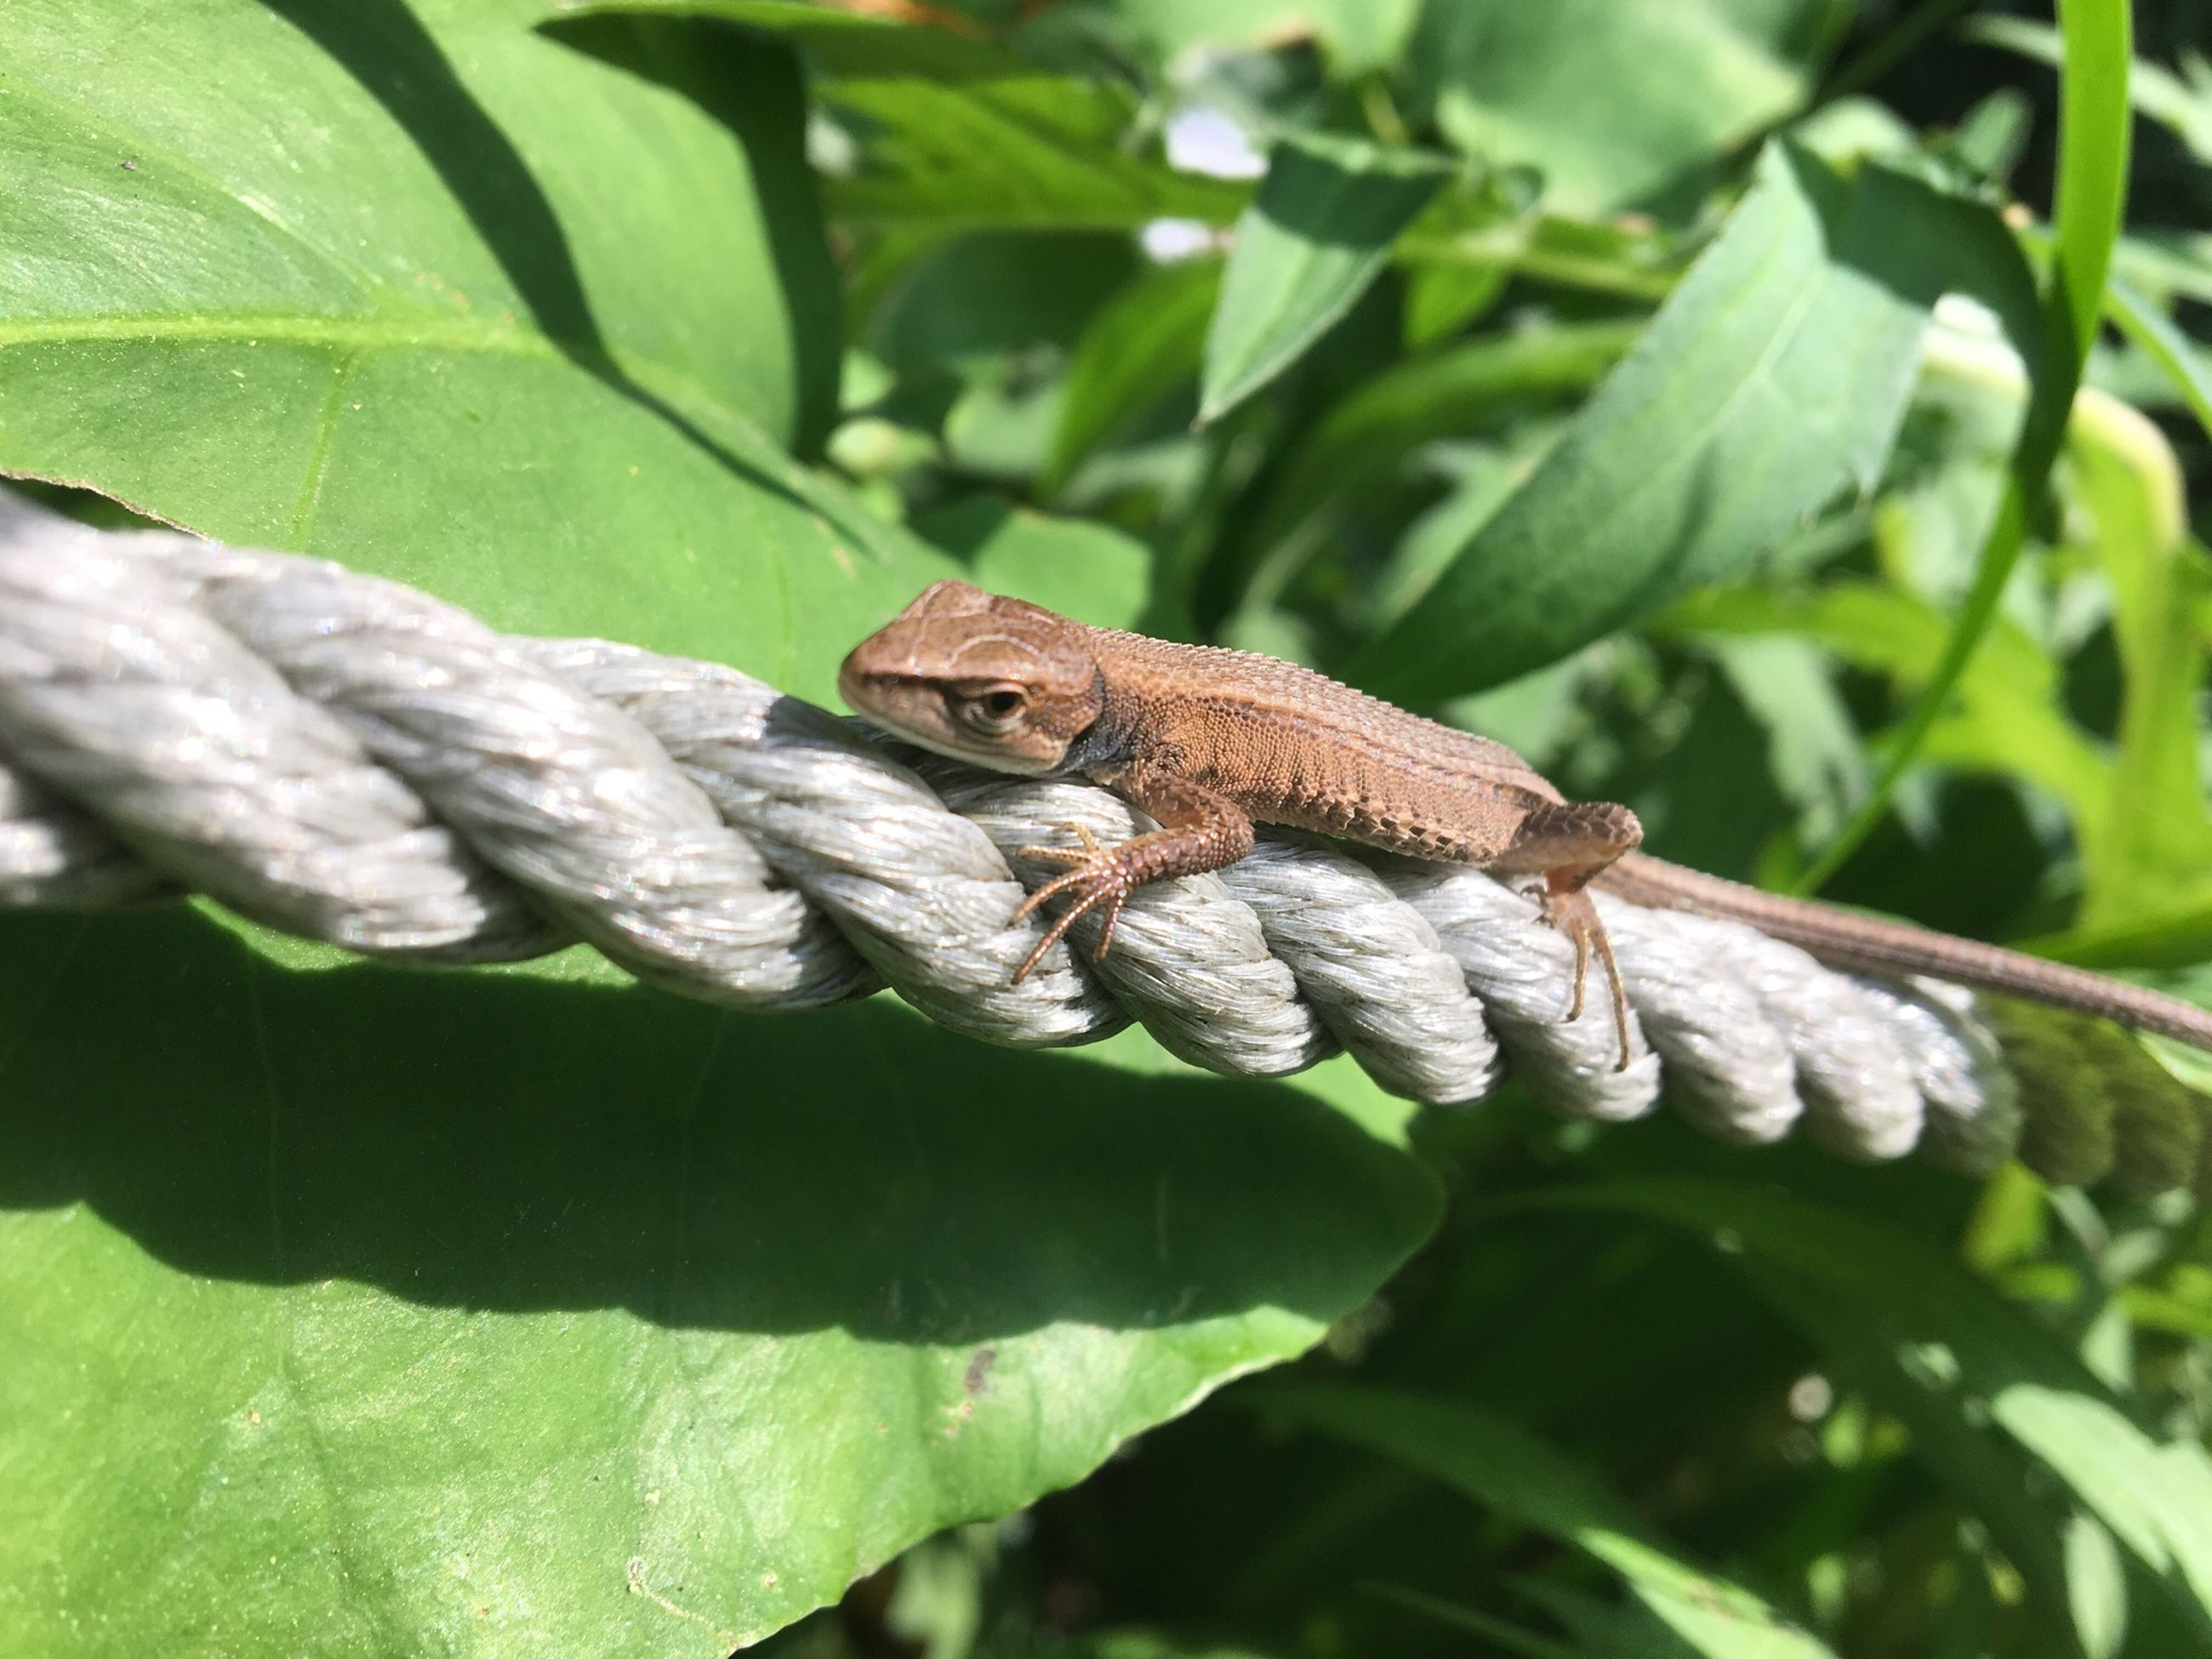 one animal, animals in the wild, leaf, animal themes, nature, green color, animal wildlife, day, outdoors, no people, growth, plant, tree, beauty in nature, close-up, reptile, branch